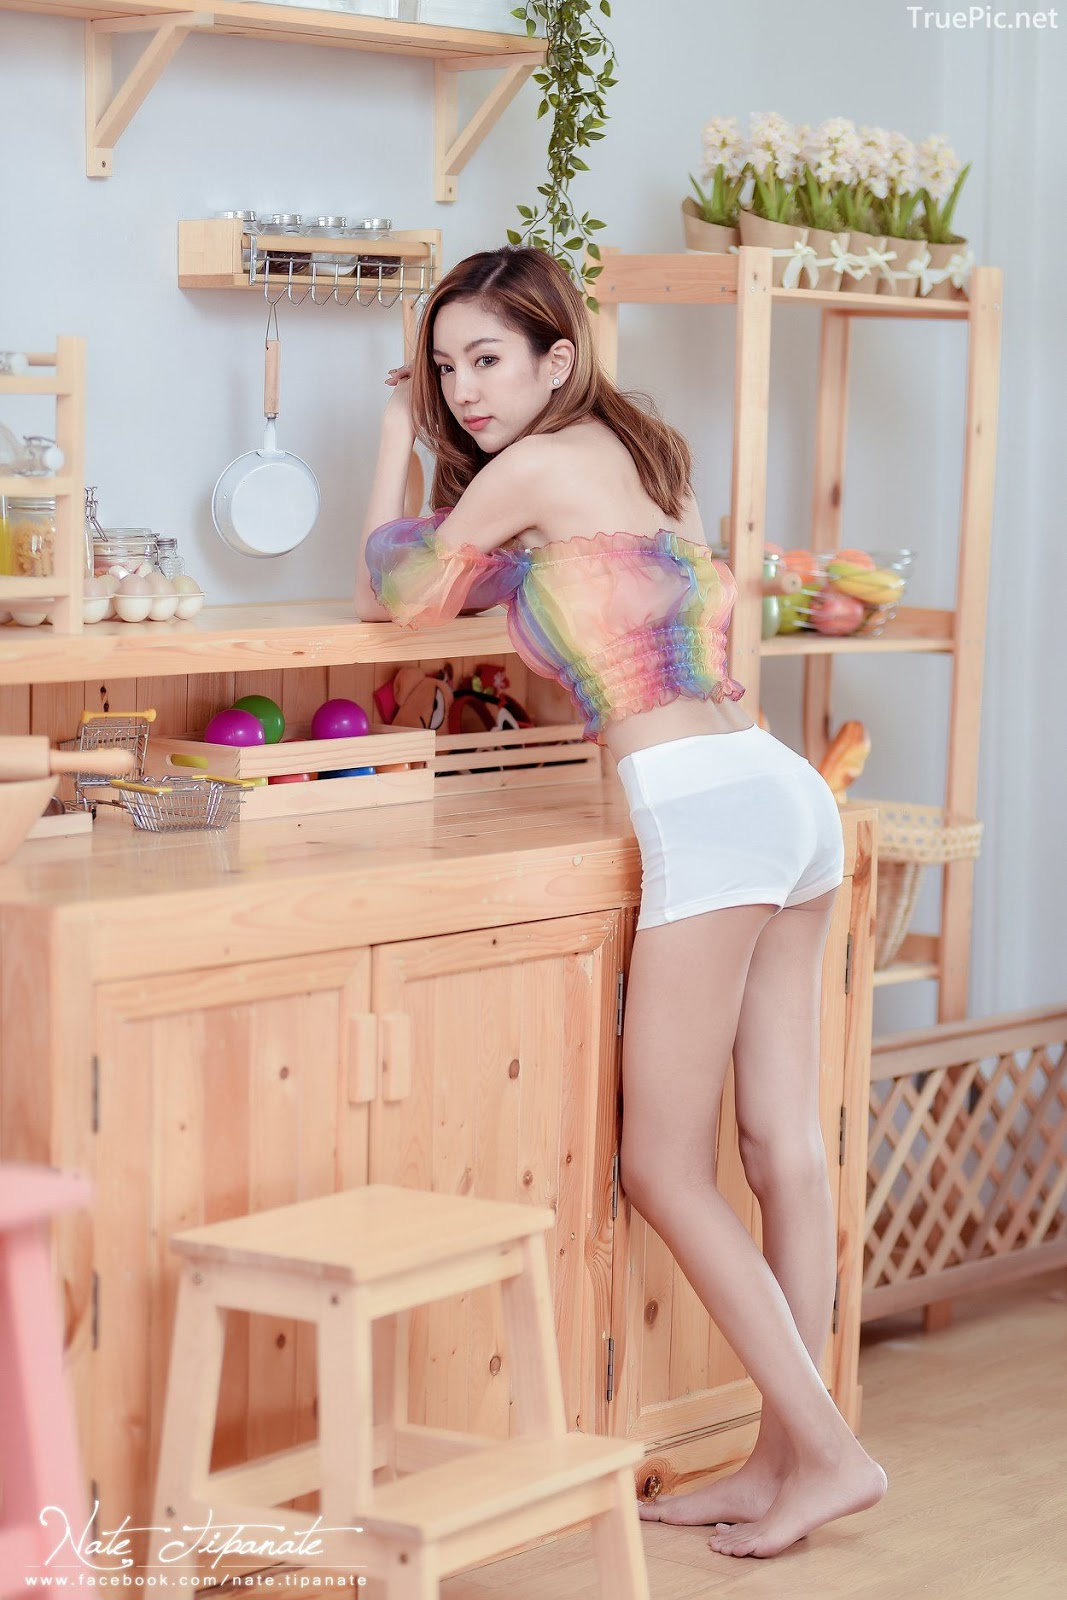 Thailand Model - Watcharaporn Wichithum - Seven Colors Rainbow - TruePic.net - Picture 1